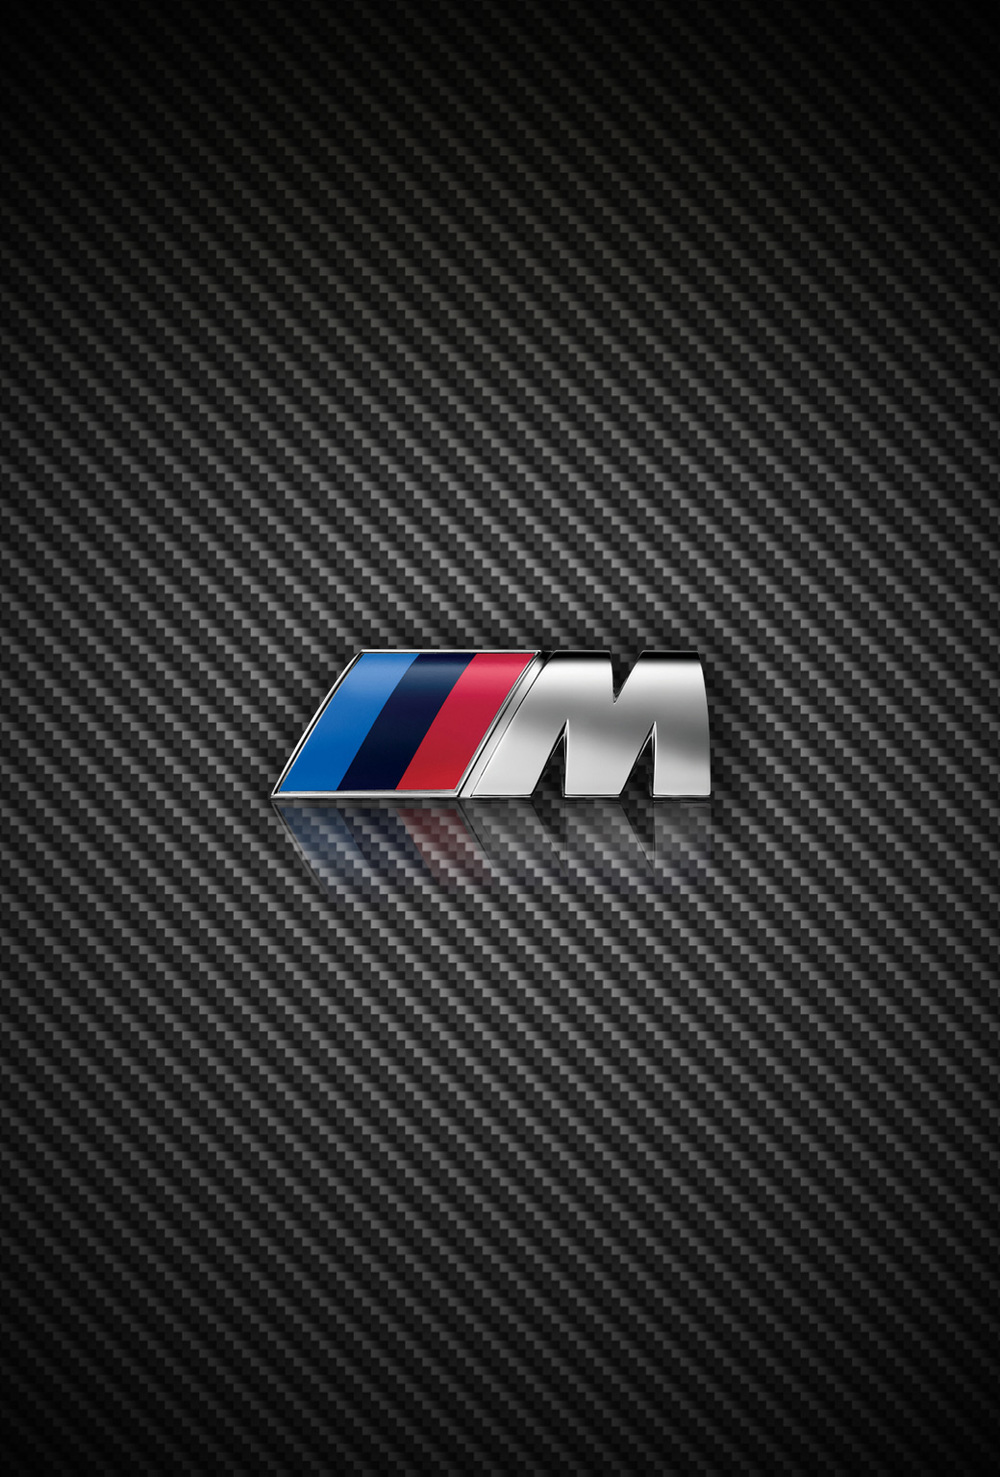 bmw m4 wallpaper iphone 6 plus